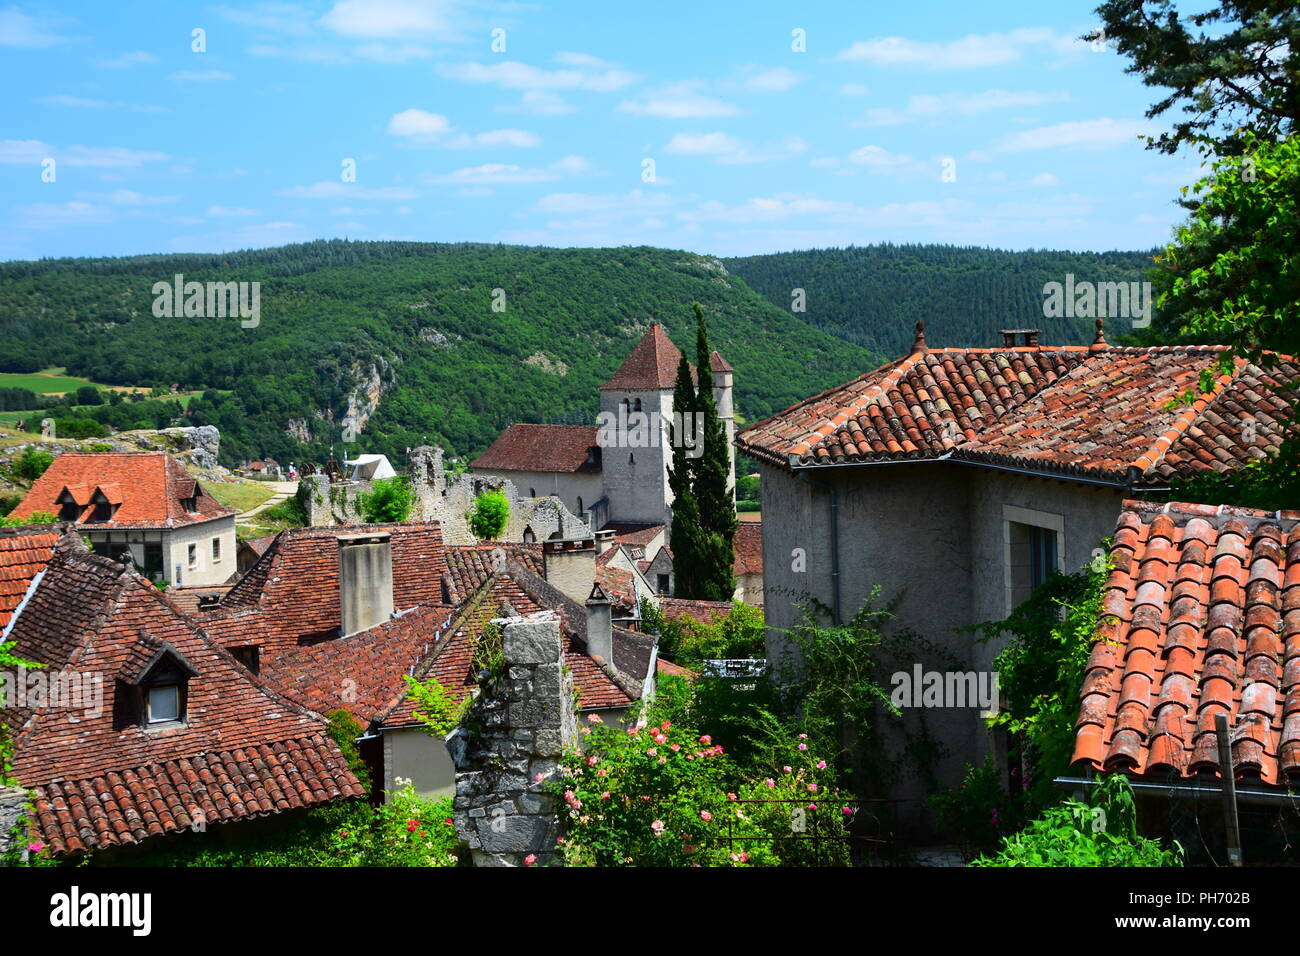 The medieval village of St-Cirq-Lapopie on the Lot RIver in southwest France - Stock Image